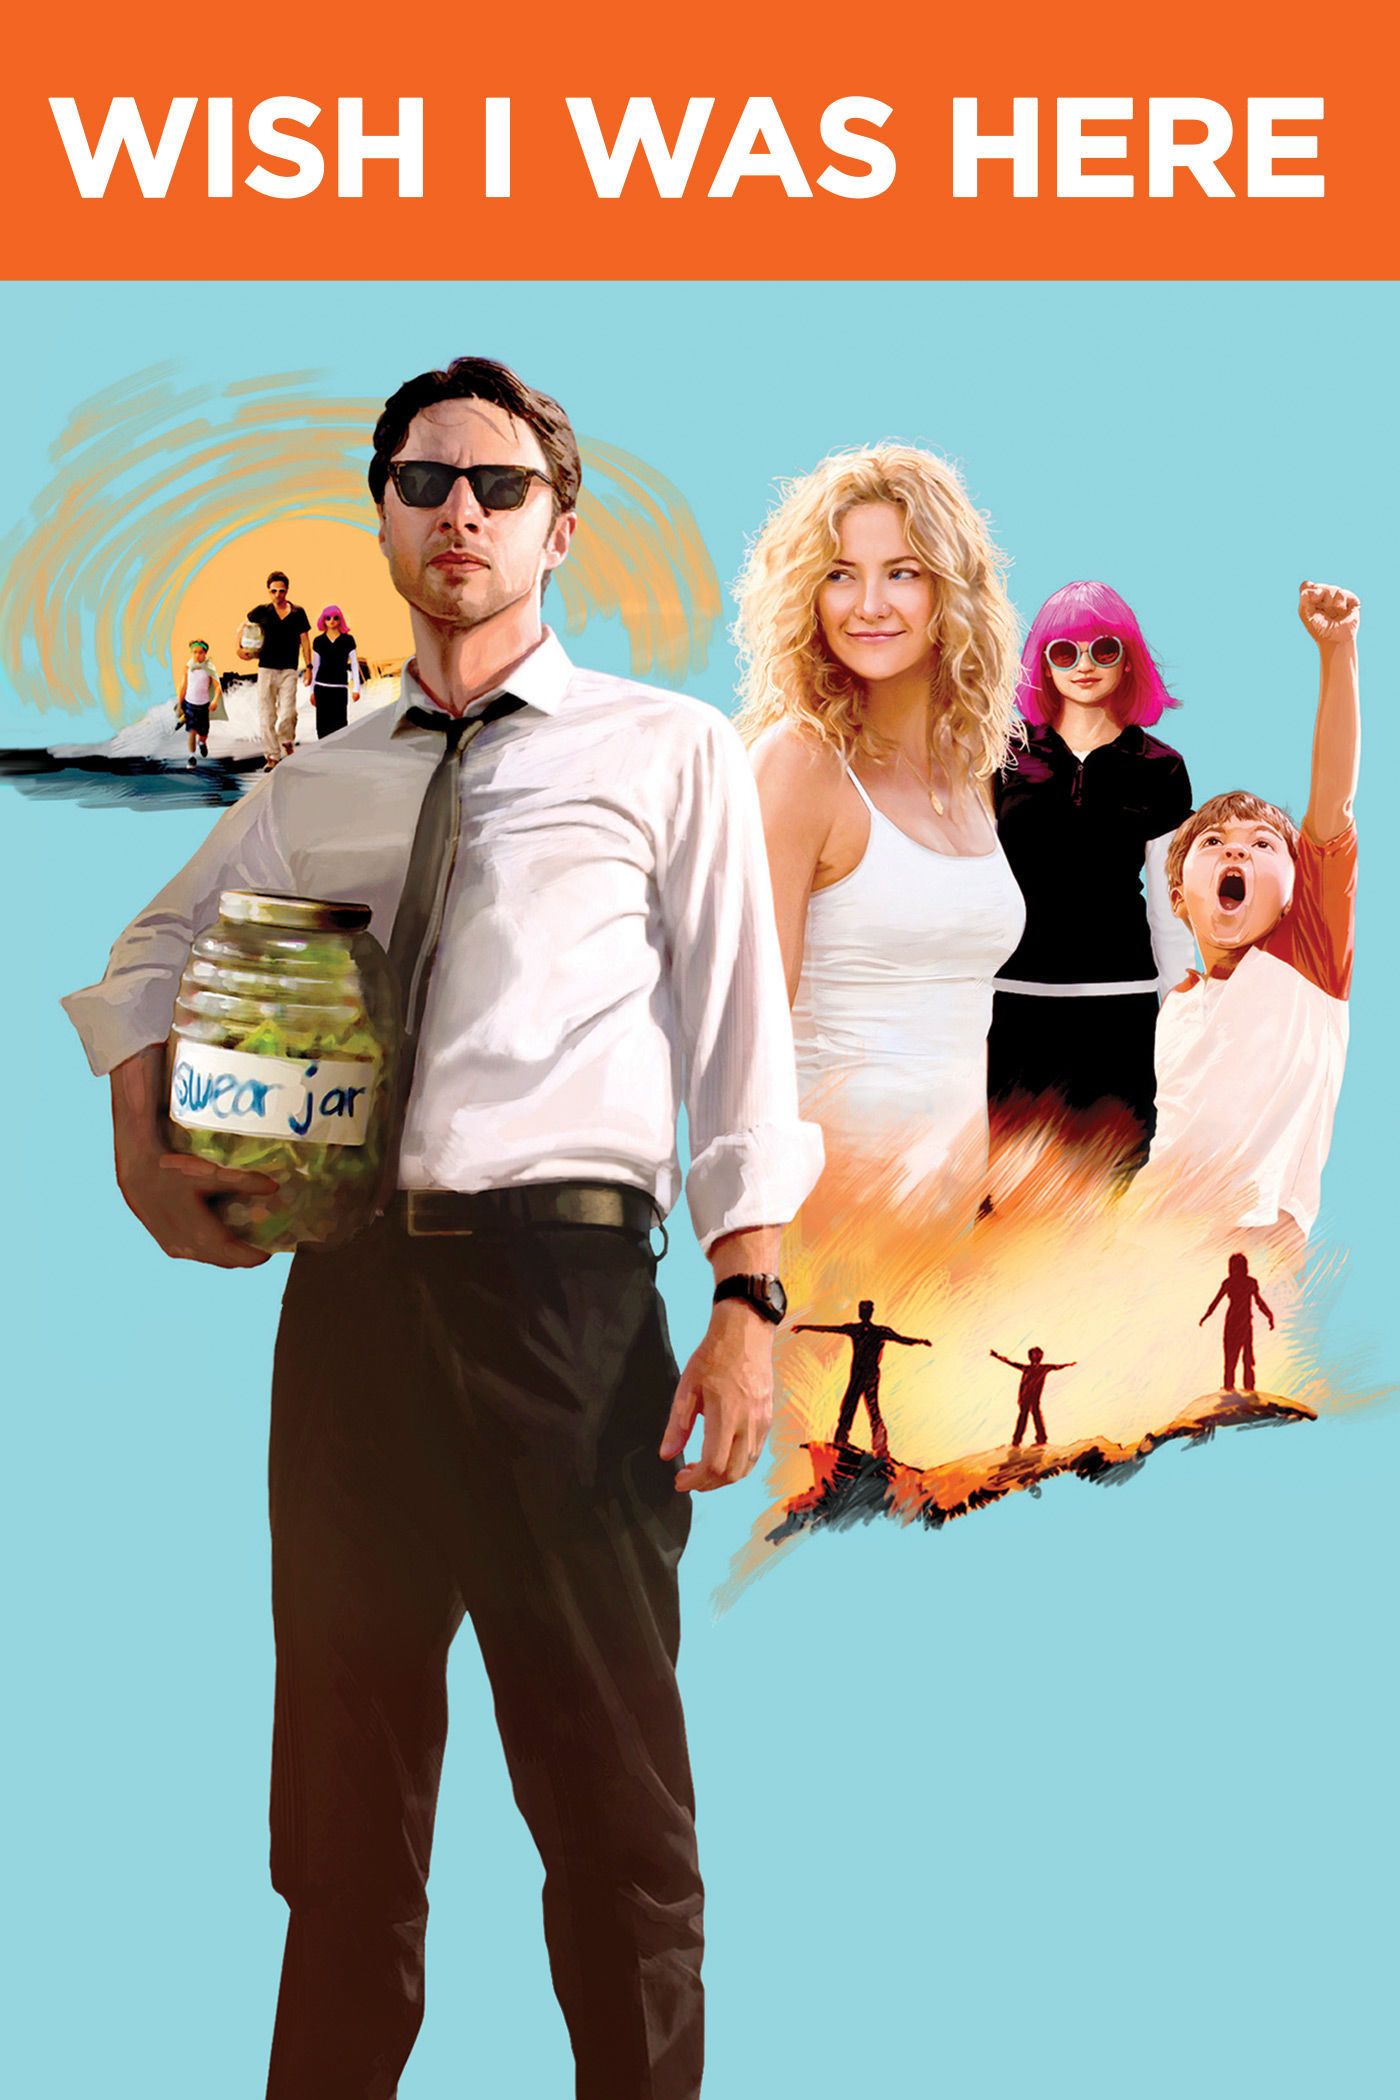 wish-i-was-here-filming-locations-itunes-poster